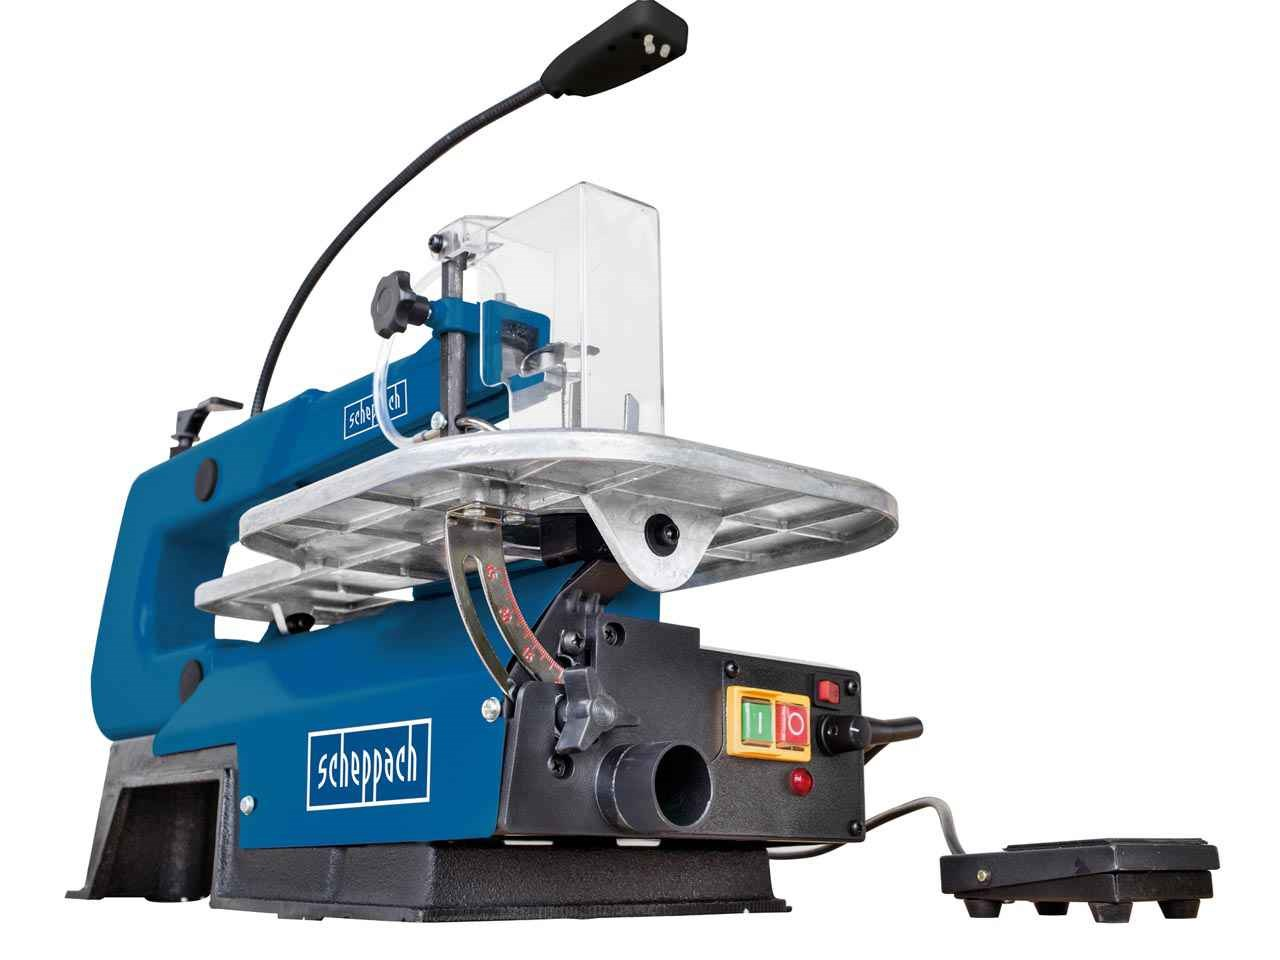 Scheppach DECO-XL 230v 50mm 16in Scroll Saw with Pedal